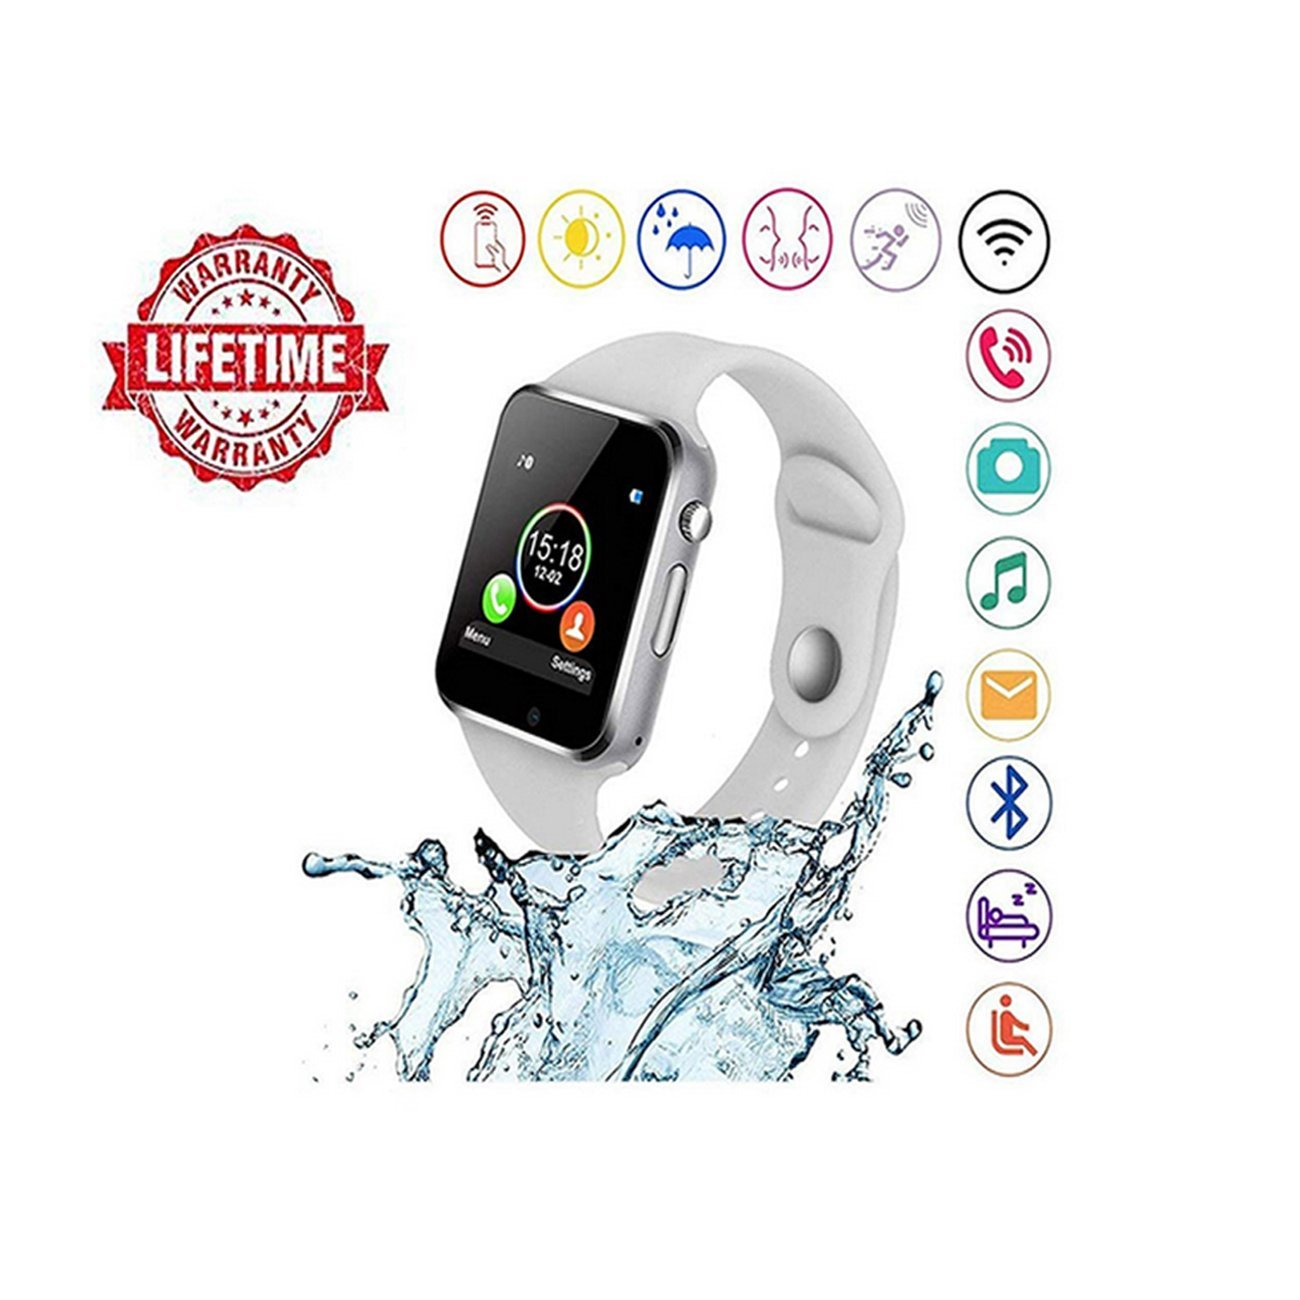 Smart watch android,HongTu Bluetooth Smart Watch TouchScreen with Camera Pedometer SIM TF Card Slot for LG XiaoMi HuaWei Samsung IOS for Mens Women (white-01)